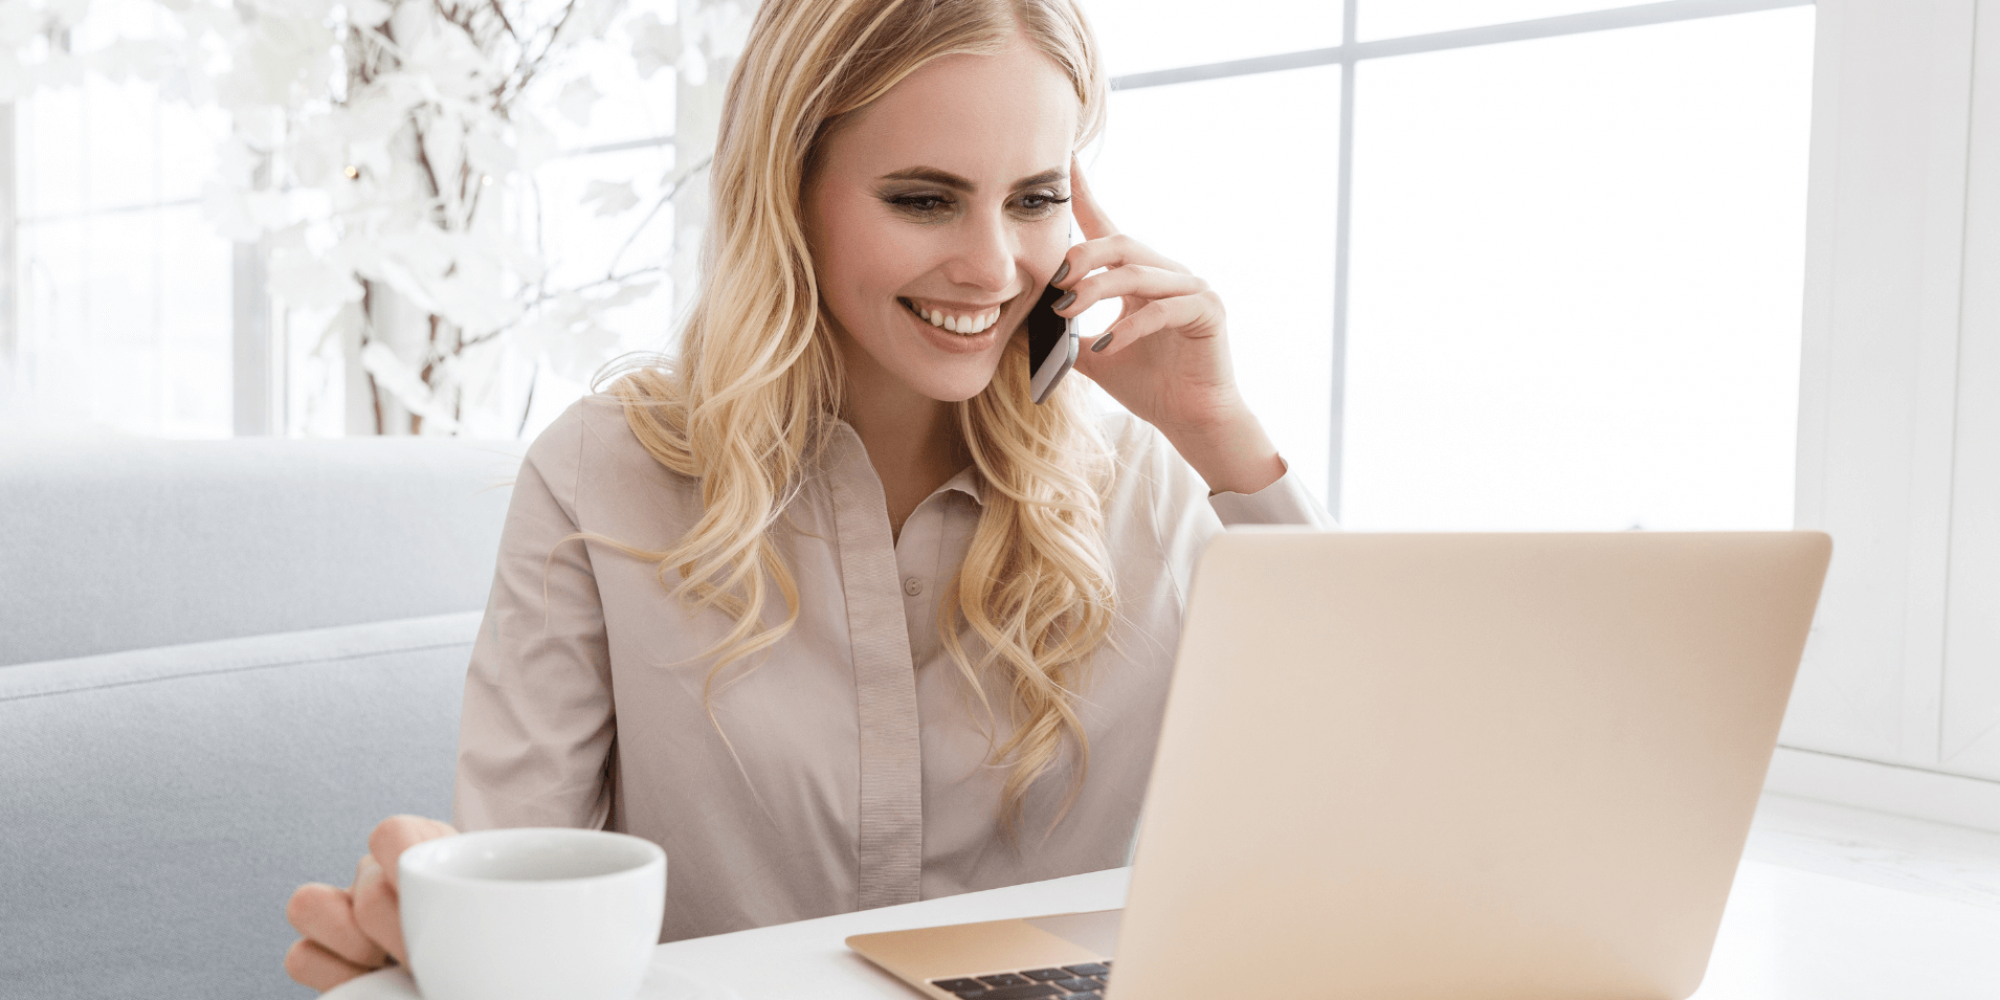 What Should You Look For in a Virtual Assistant?